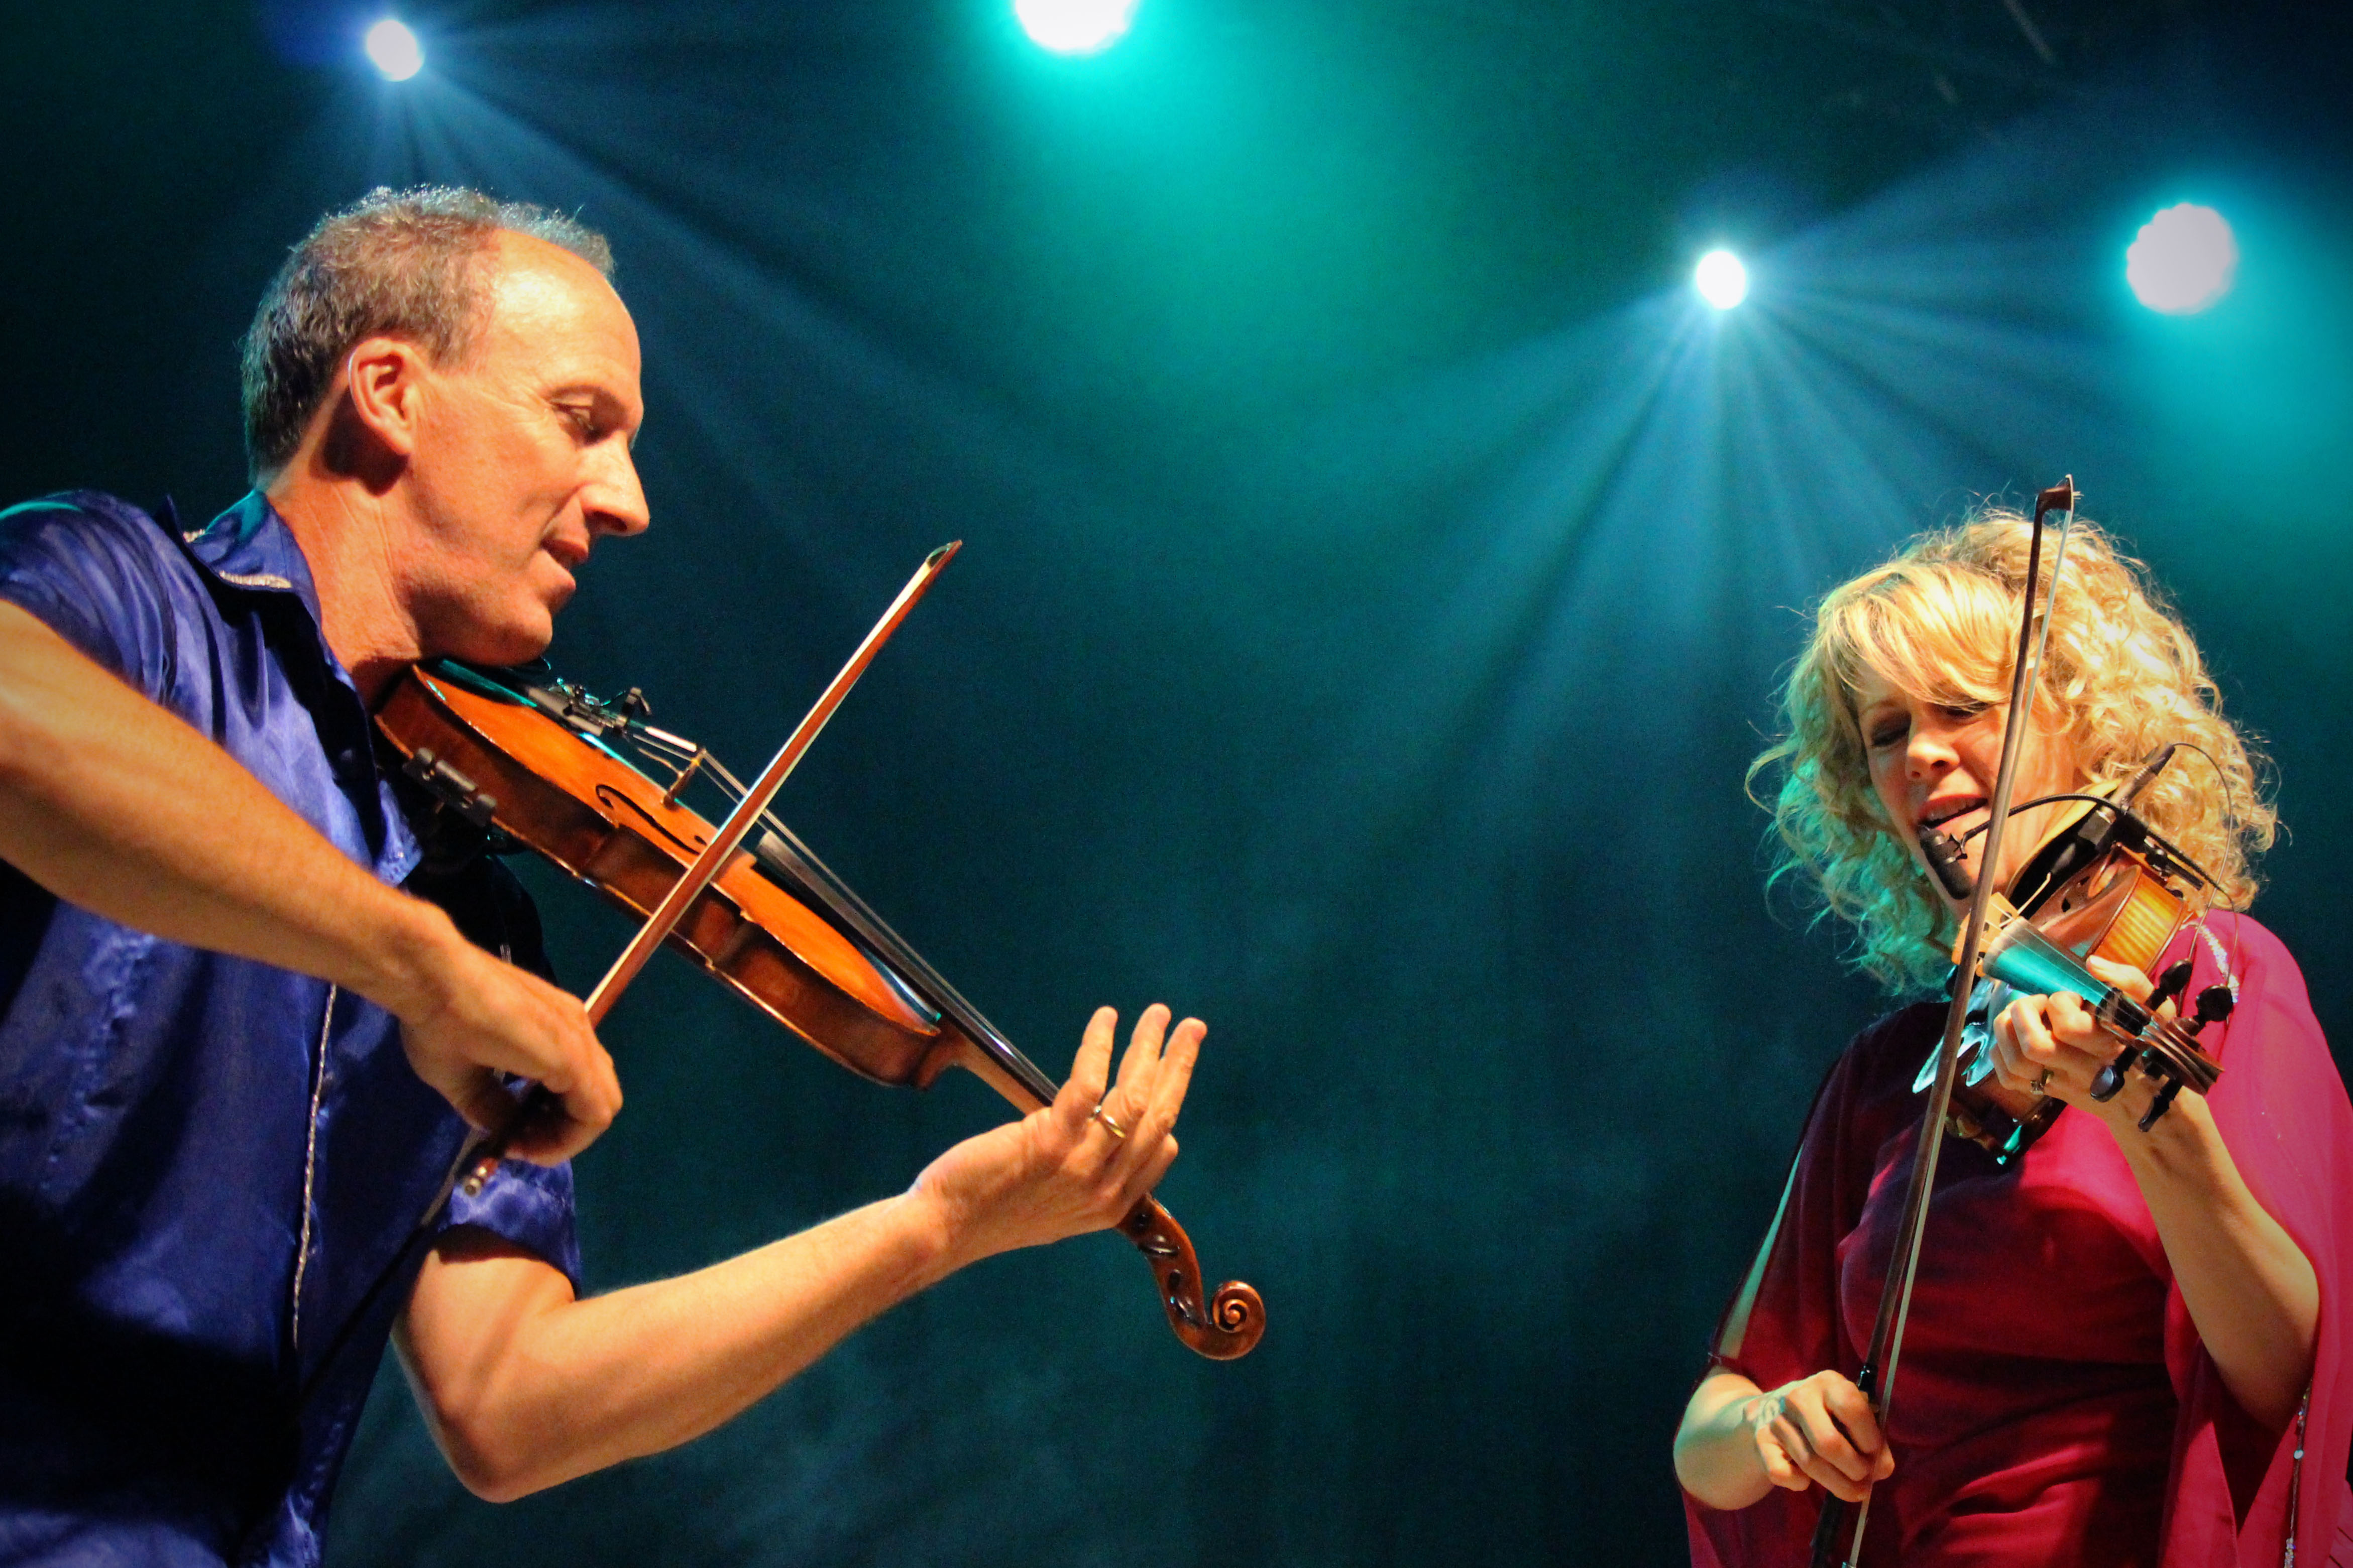 NLFB Artist Profile: Donnell Leahy and Natalie MacMaster